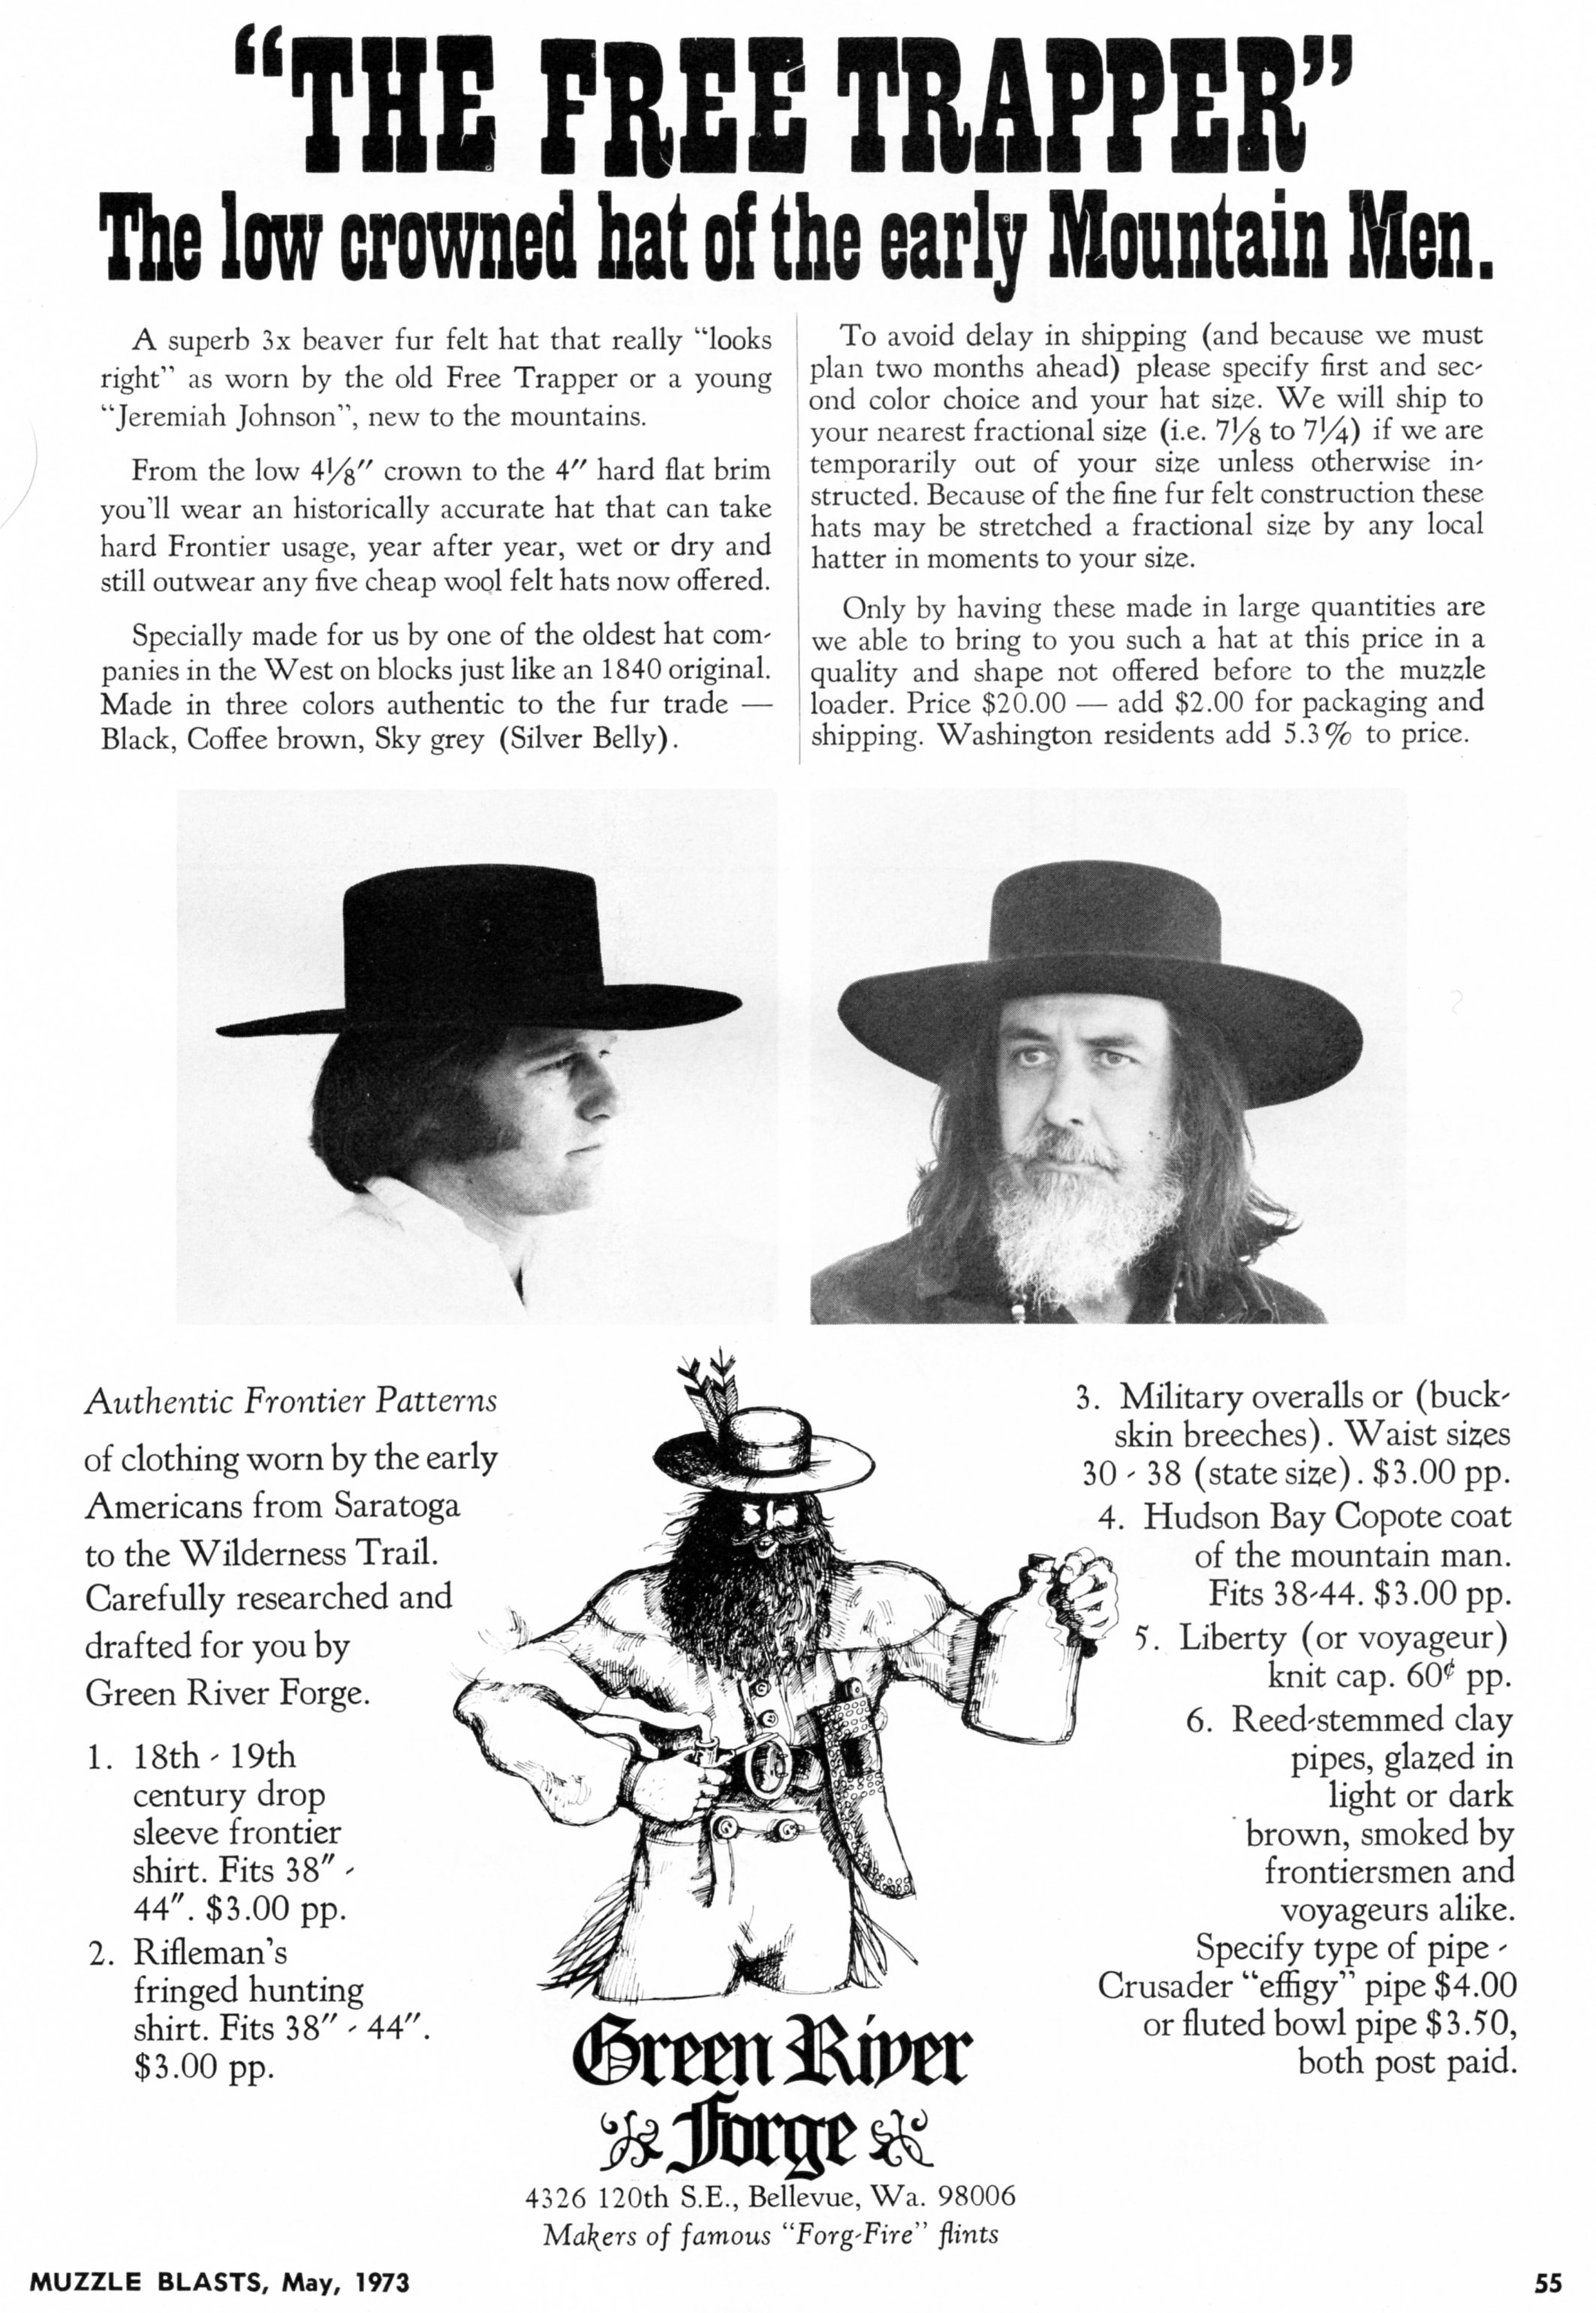 Green River Forge MM hat ad